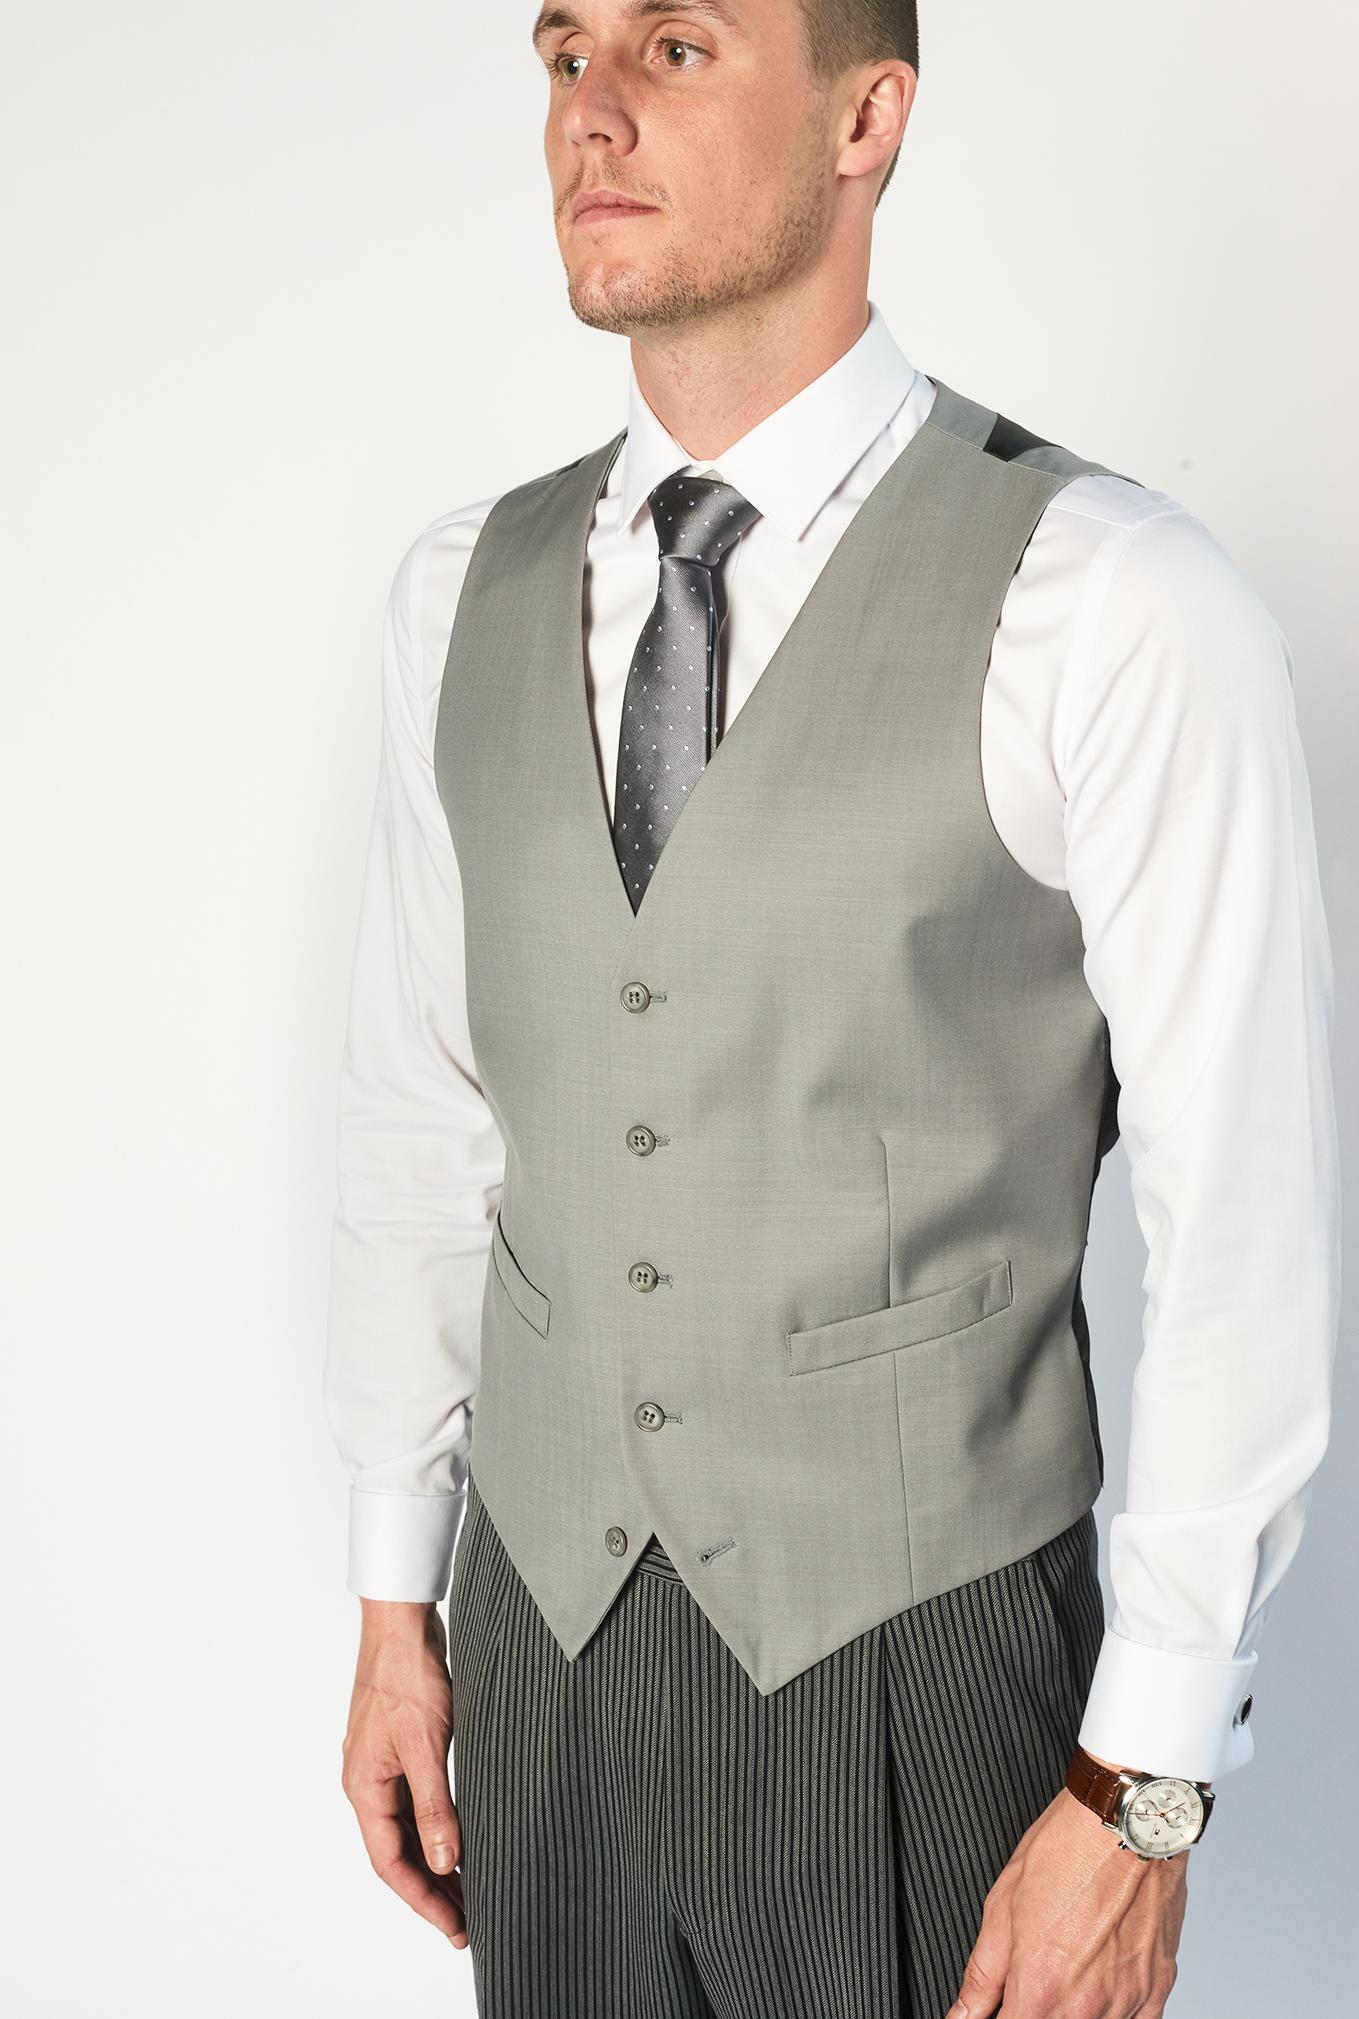 The Morning suit grey vest